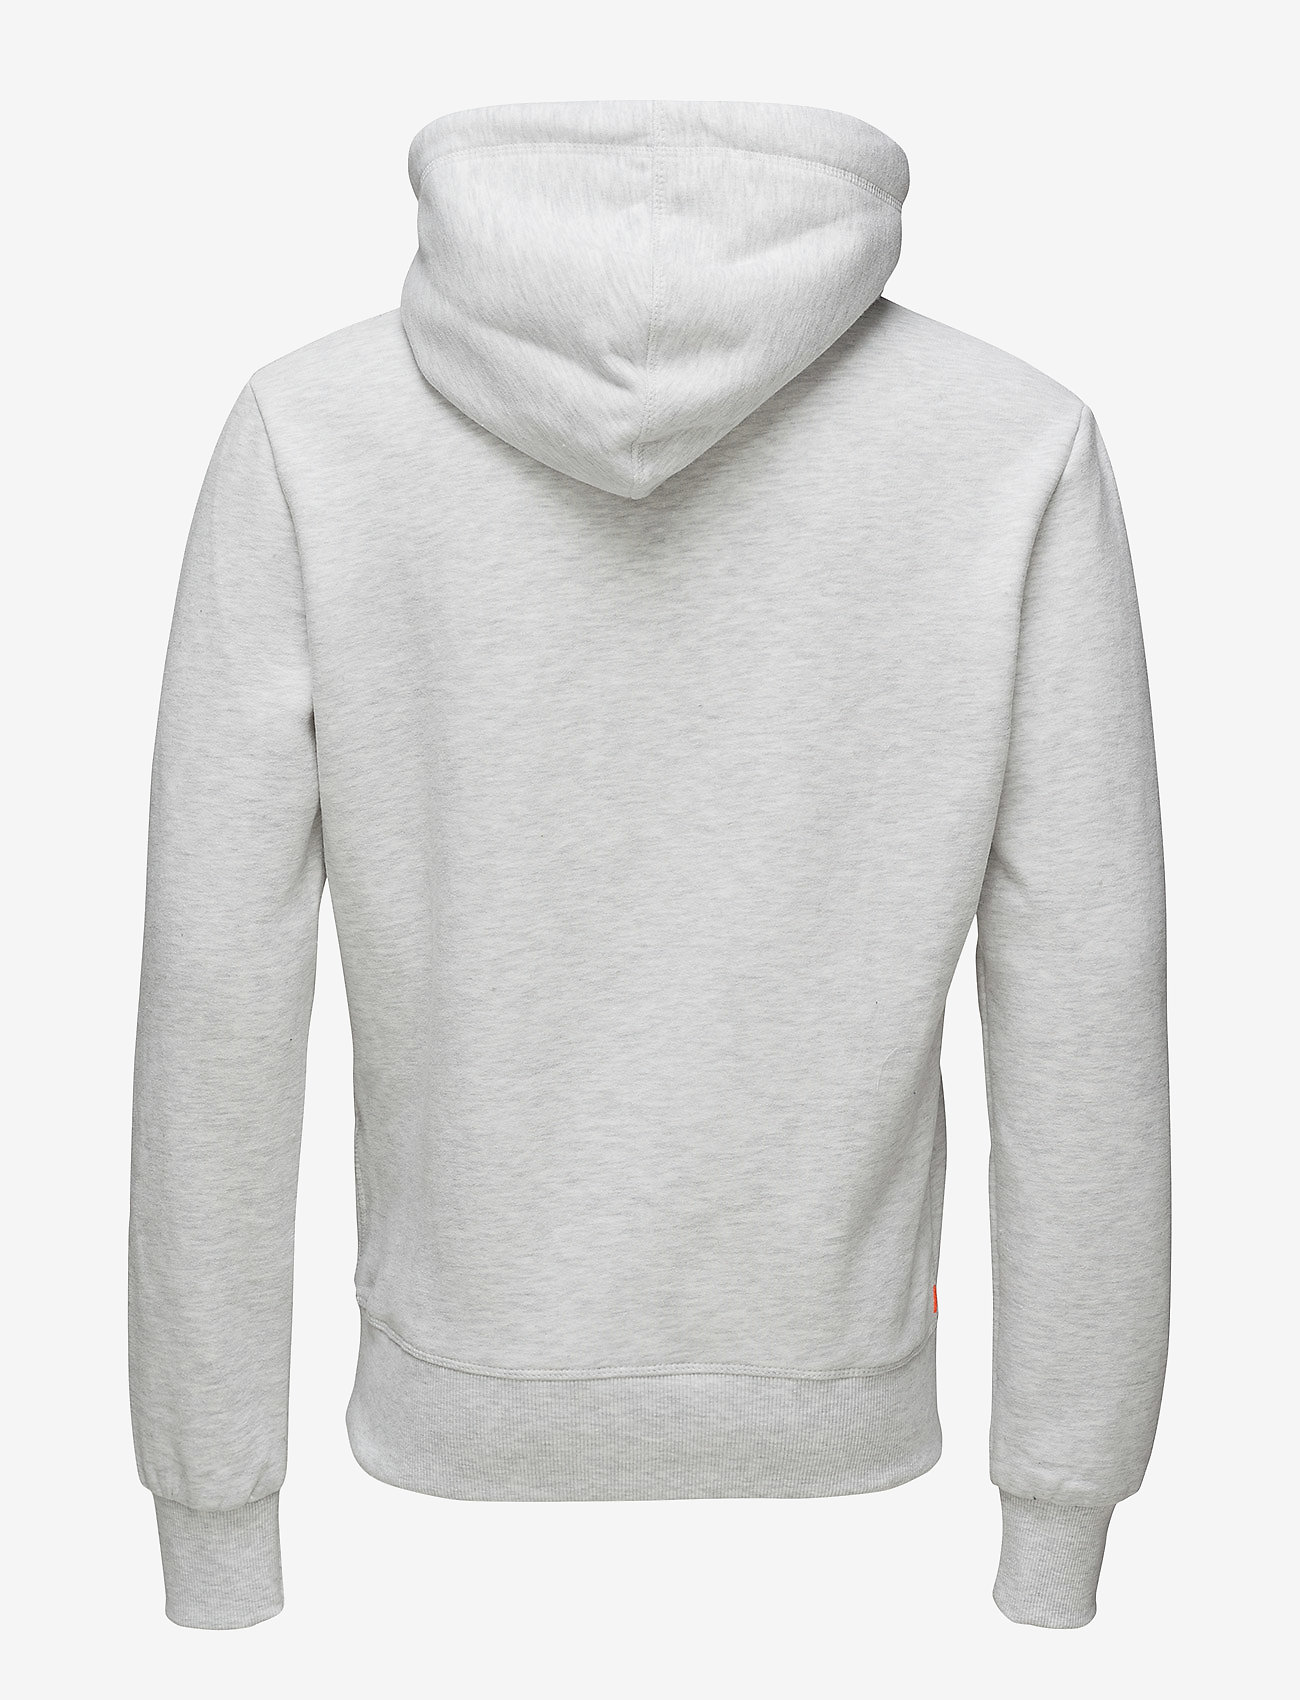 Superdry SWEAT SHIRT SHOP DUO HOOD - Sweatshirts ICE MARL - Menn Klær